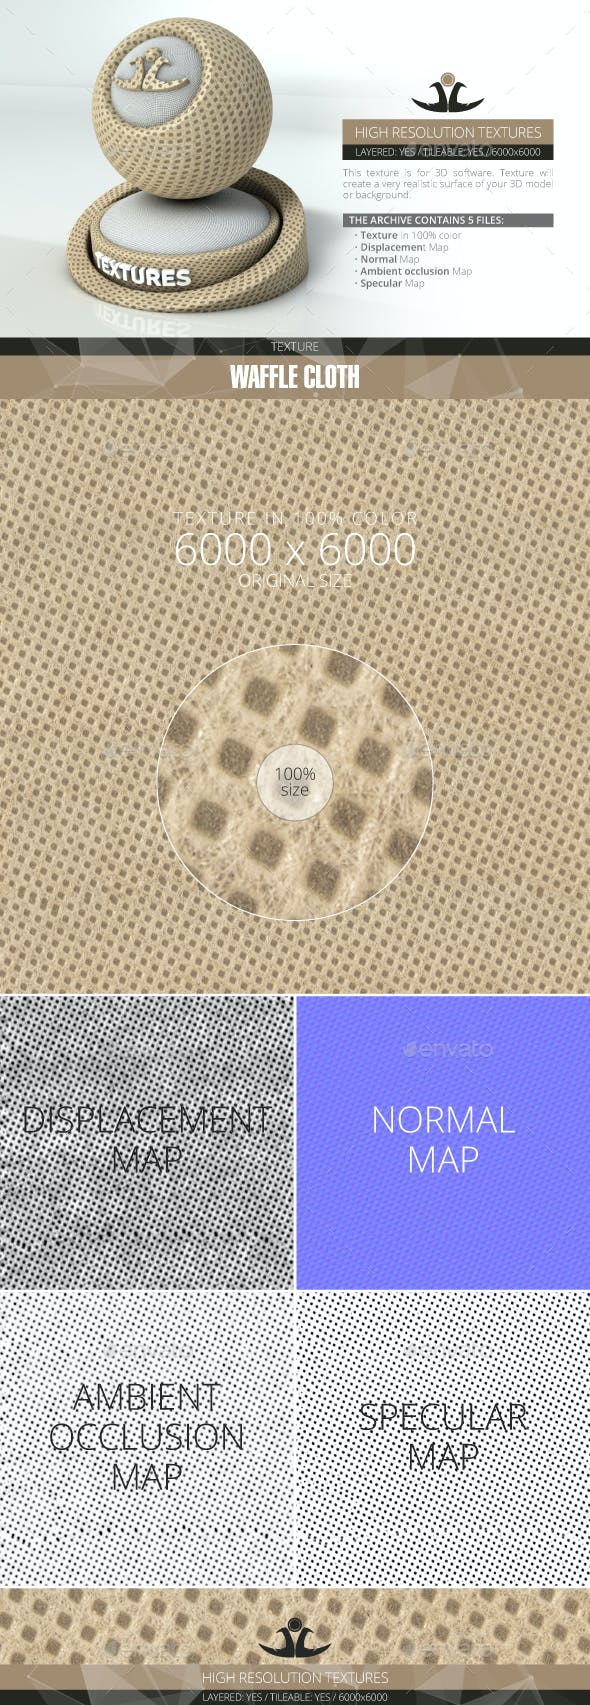 Waffle Cloth - 3DOcean Item for Sale